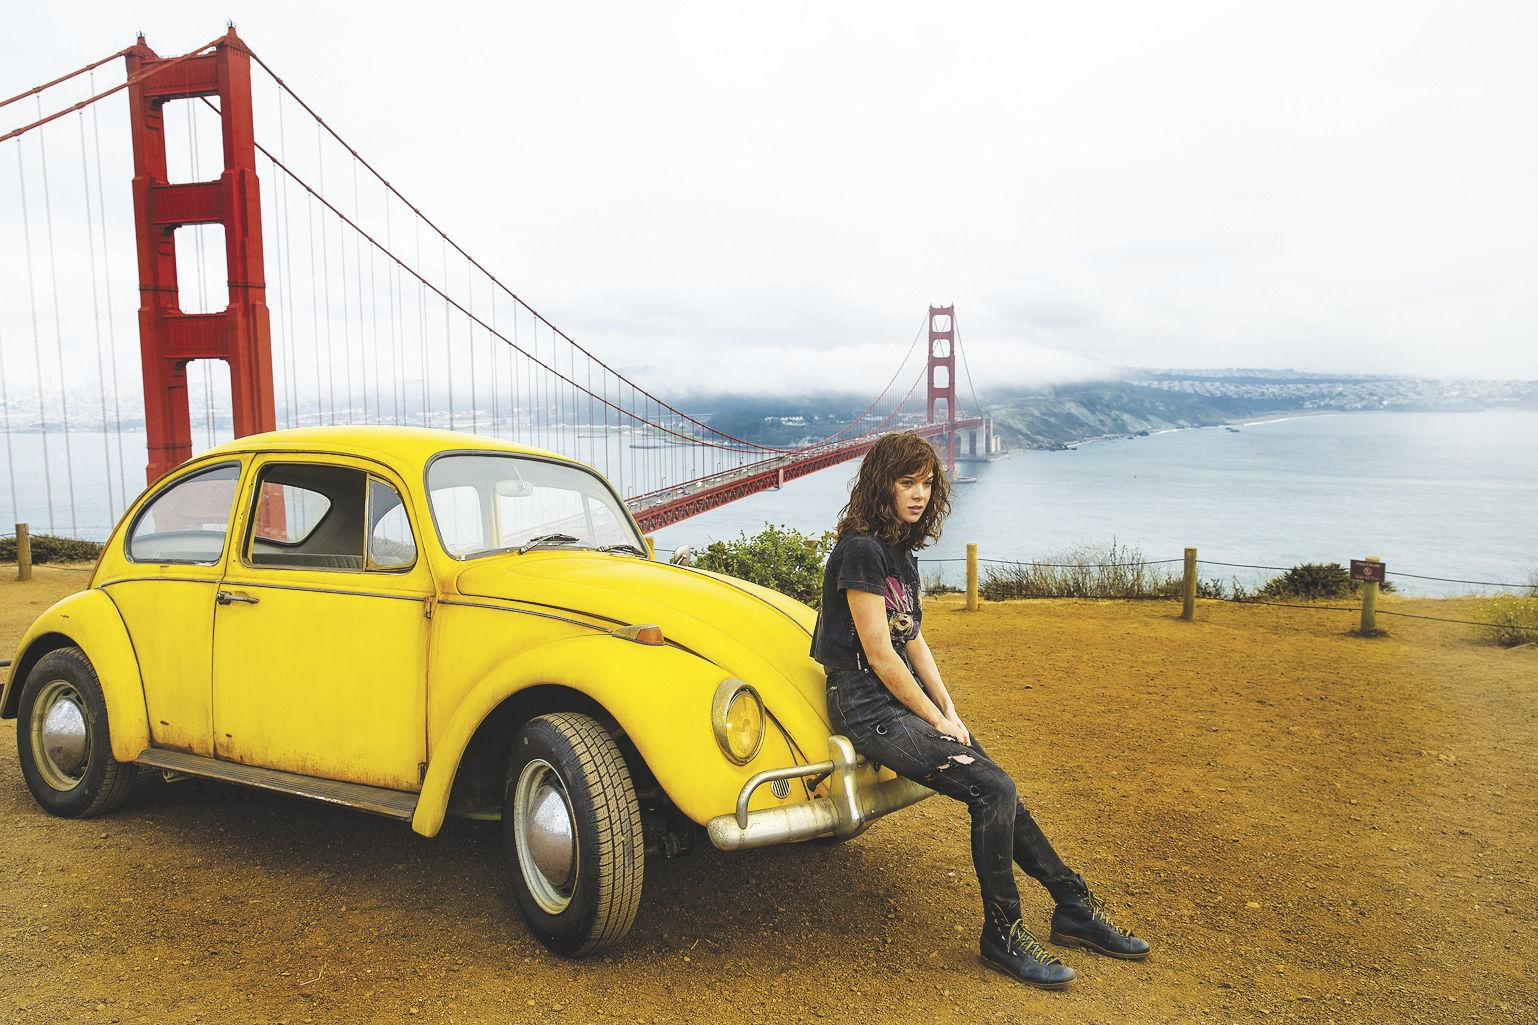 """Bumblebee in his car form and Hailee Steinfeld as Charlie in """"Bumblebee,"""" the sixth film in the live-action """"Transformers"""" franchise. (WILL MCOY/PARAMOUNT PICTURES)"""